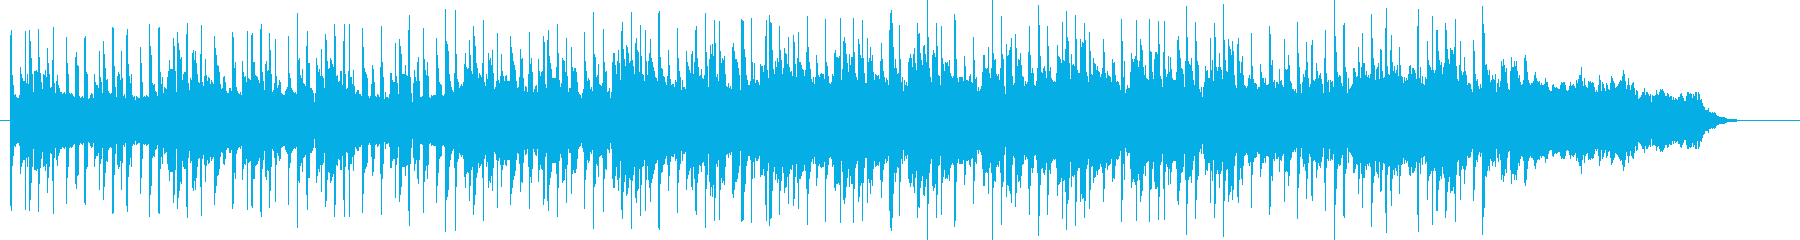 Bright pop music's reproduced waveform